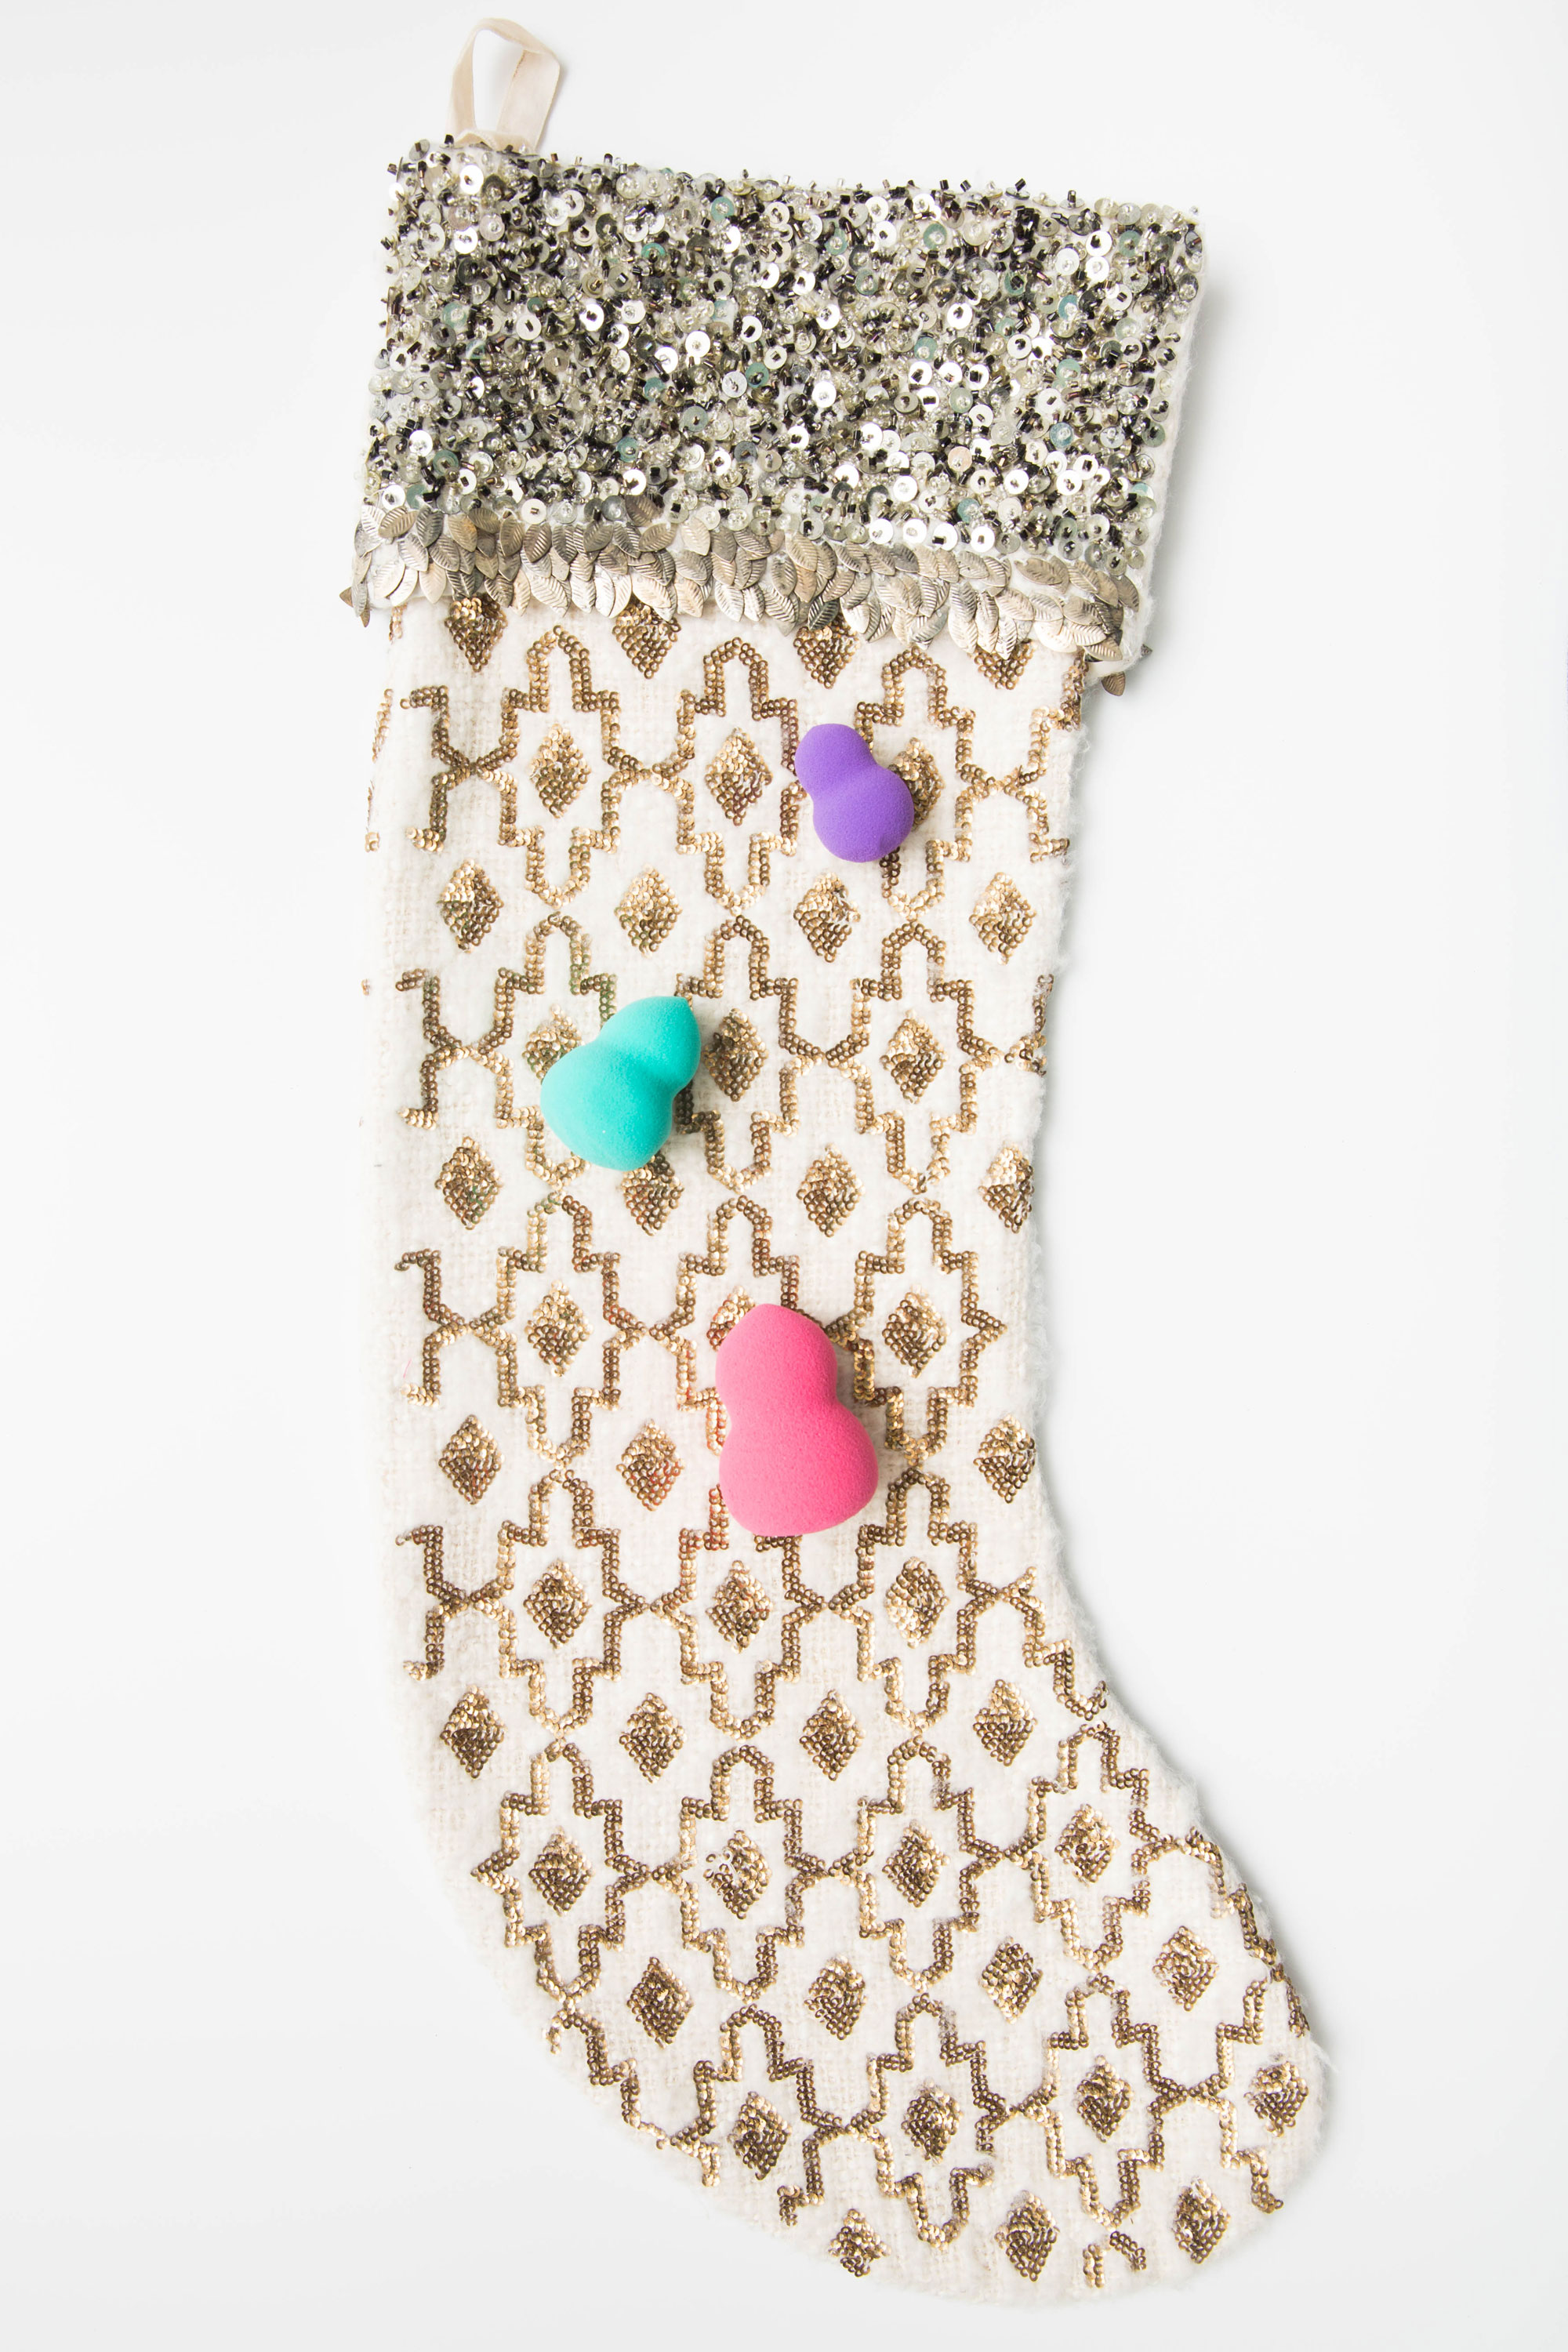 18 Mini Stocking Stuffers For Women Tiny Gifts That Make